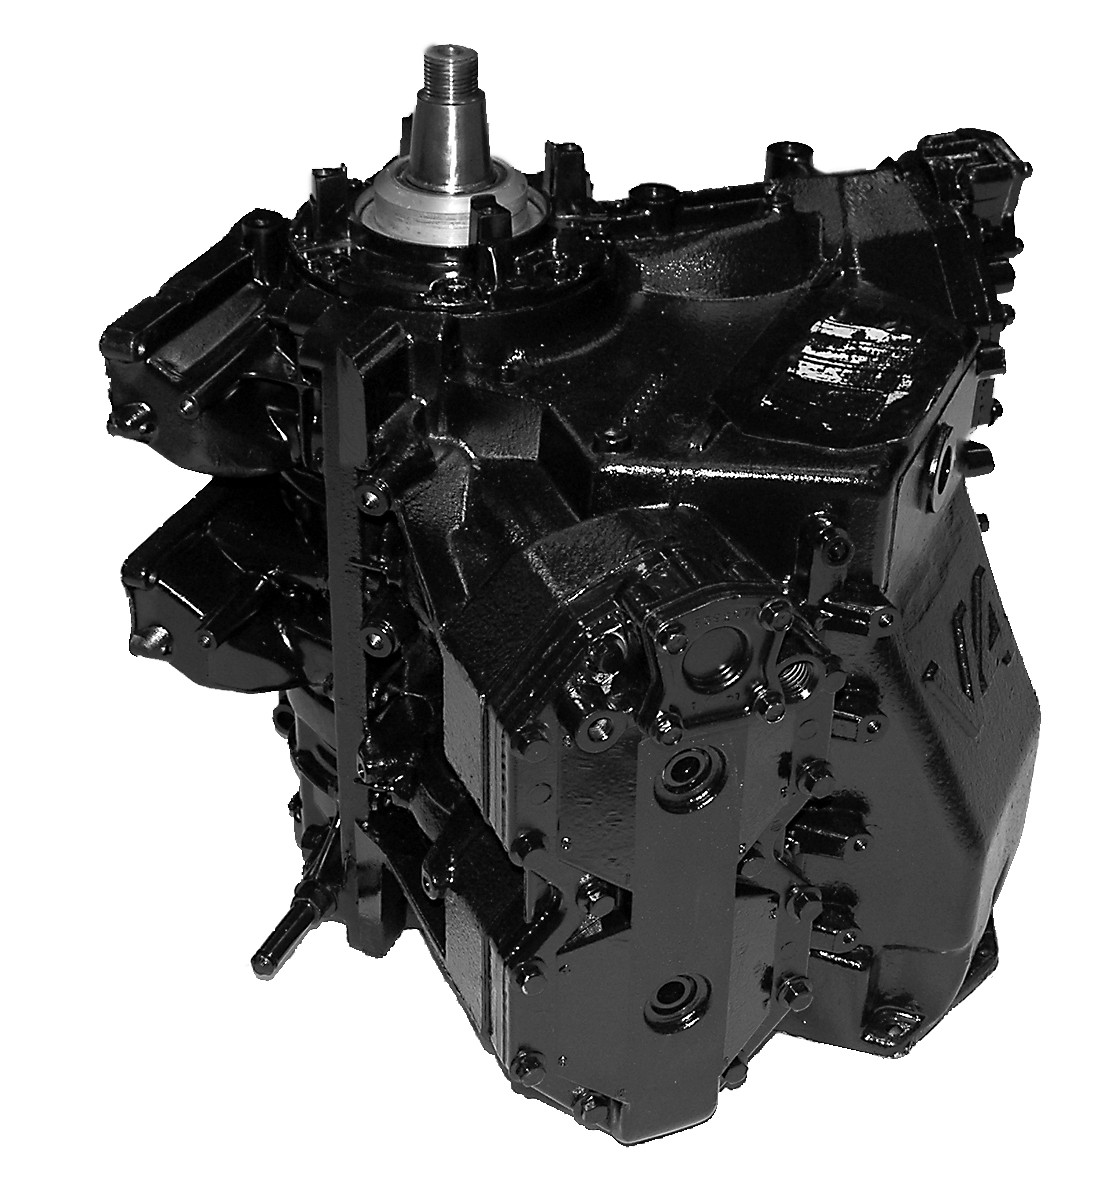 Remanufactured Johnson/Evinrude 120/125/130/135/140 HP and